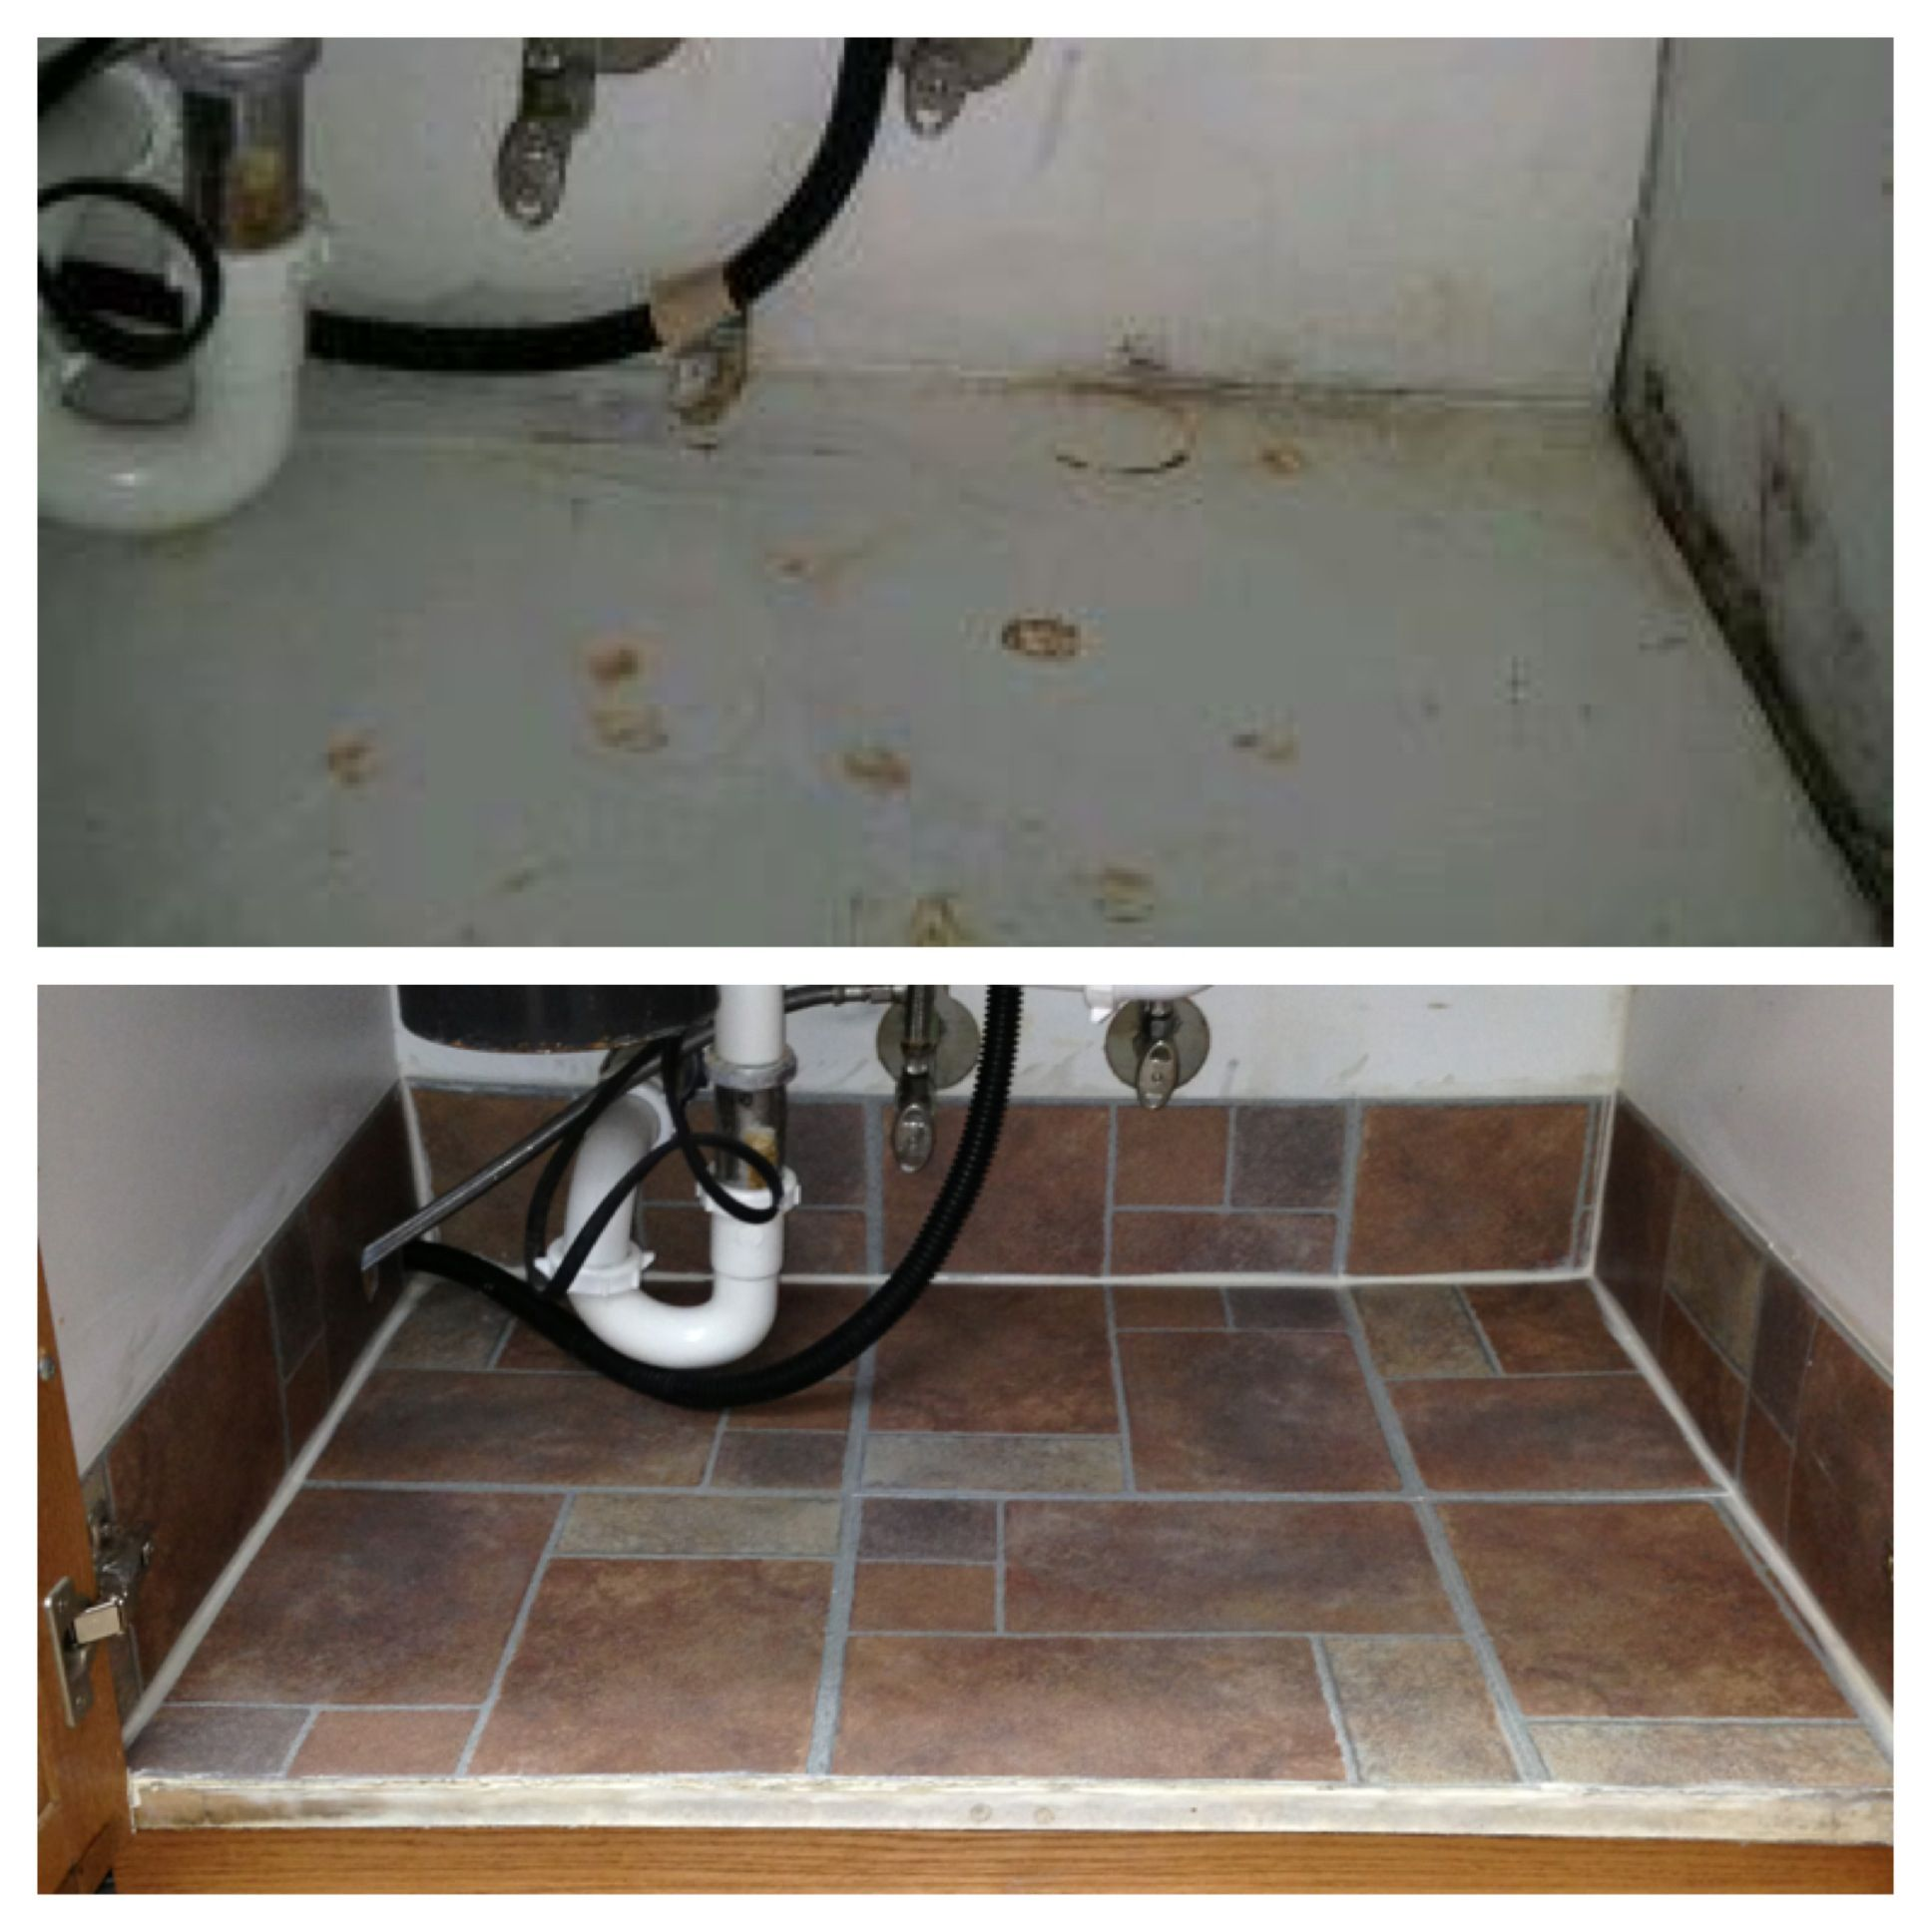 Pin By Mariana Del Valle On Things I Ve Done Kitchen Sink Remodel Under Kitchen Sinks Home Repairs